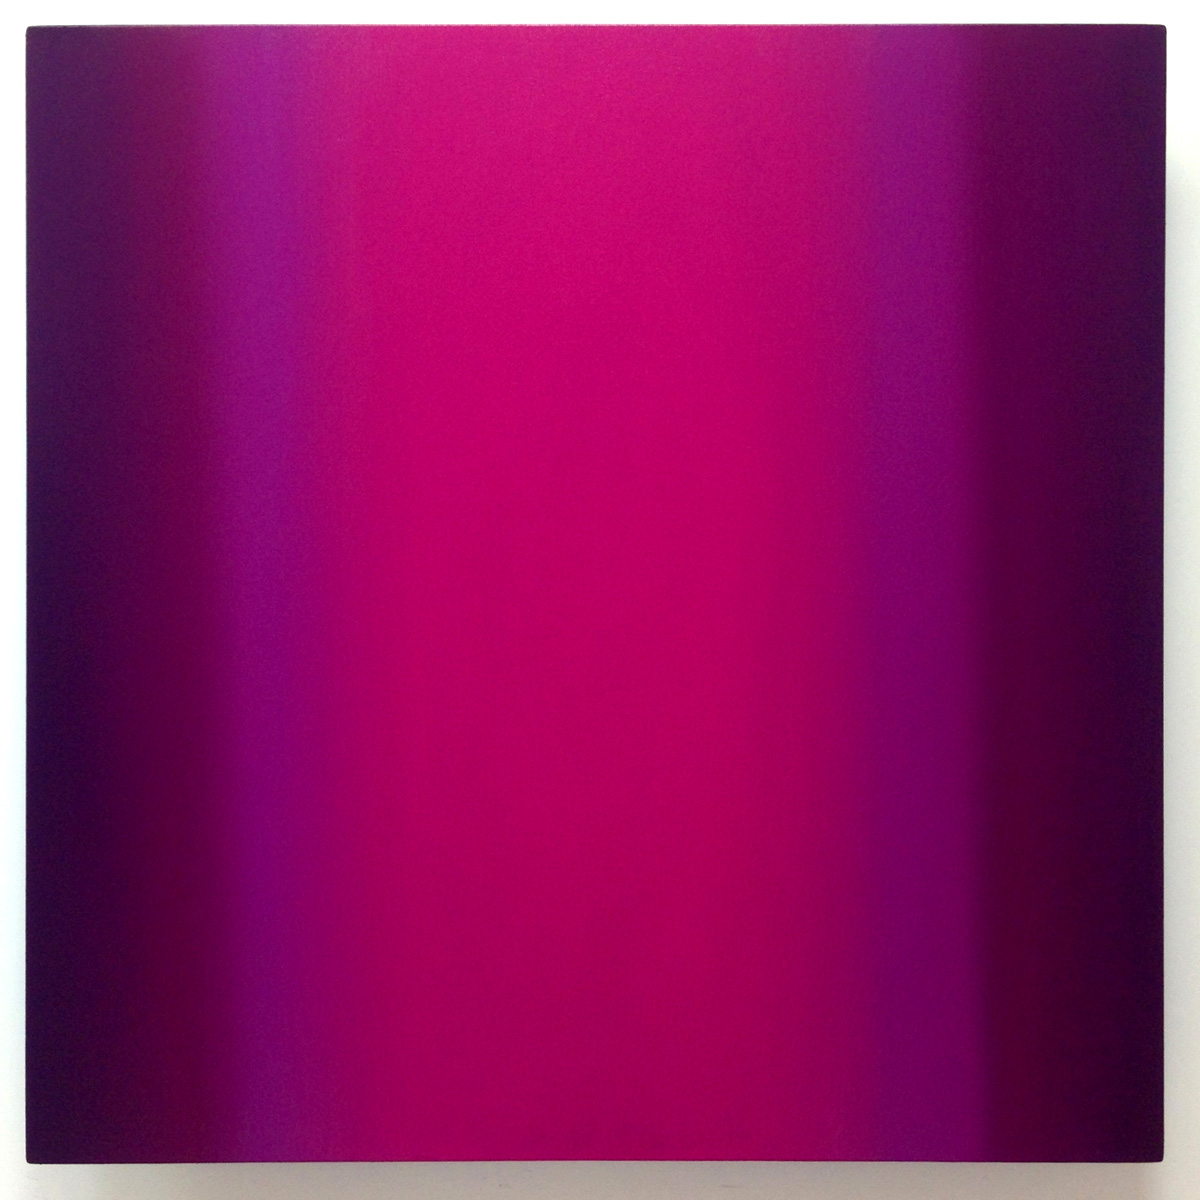 Mind's Eye Magenta Violet 1-S4040 (Magenta Violet), Sense Certainty Series, 2014, oil on canvas on custom beveled stretcher, 40 x 40 in. (102 x 102 cm.)